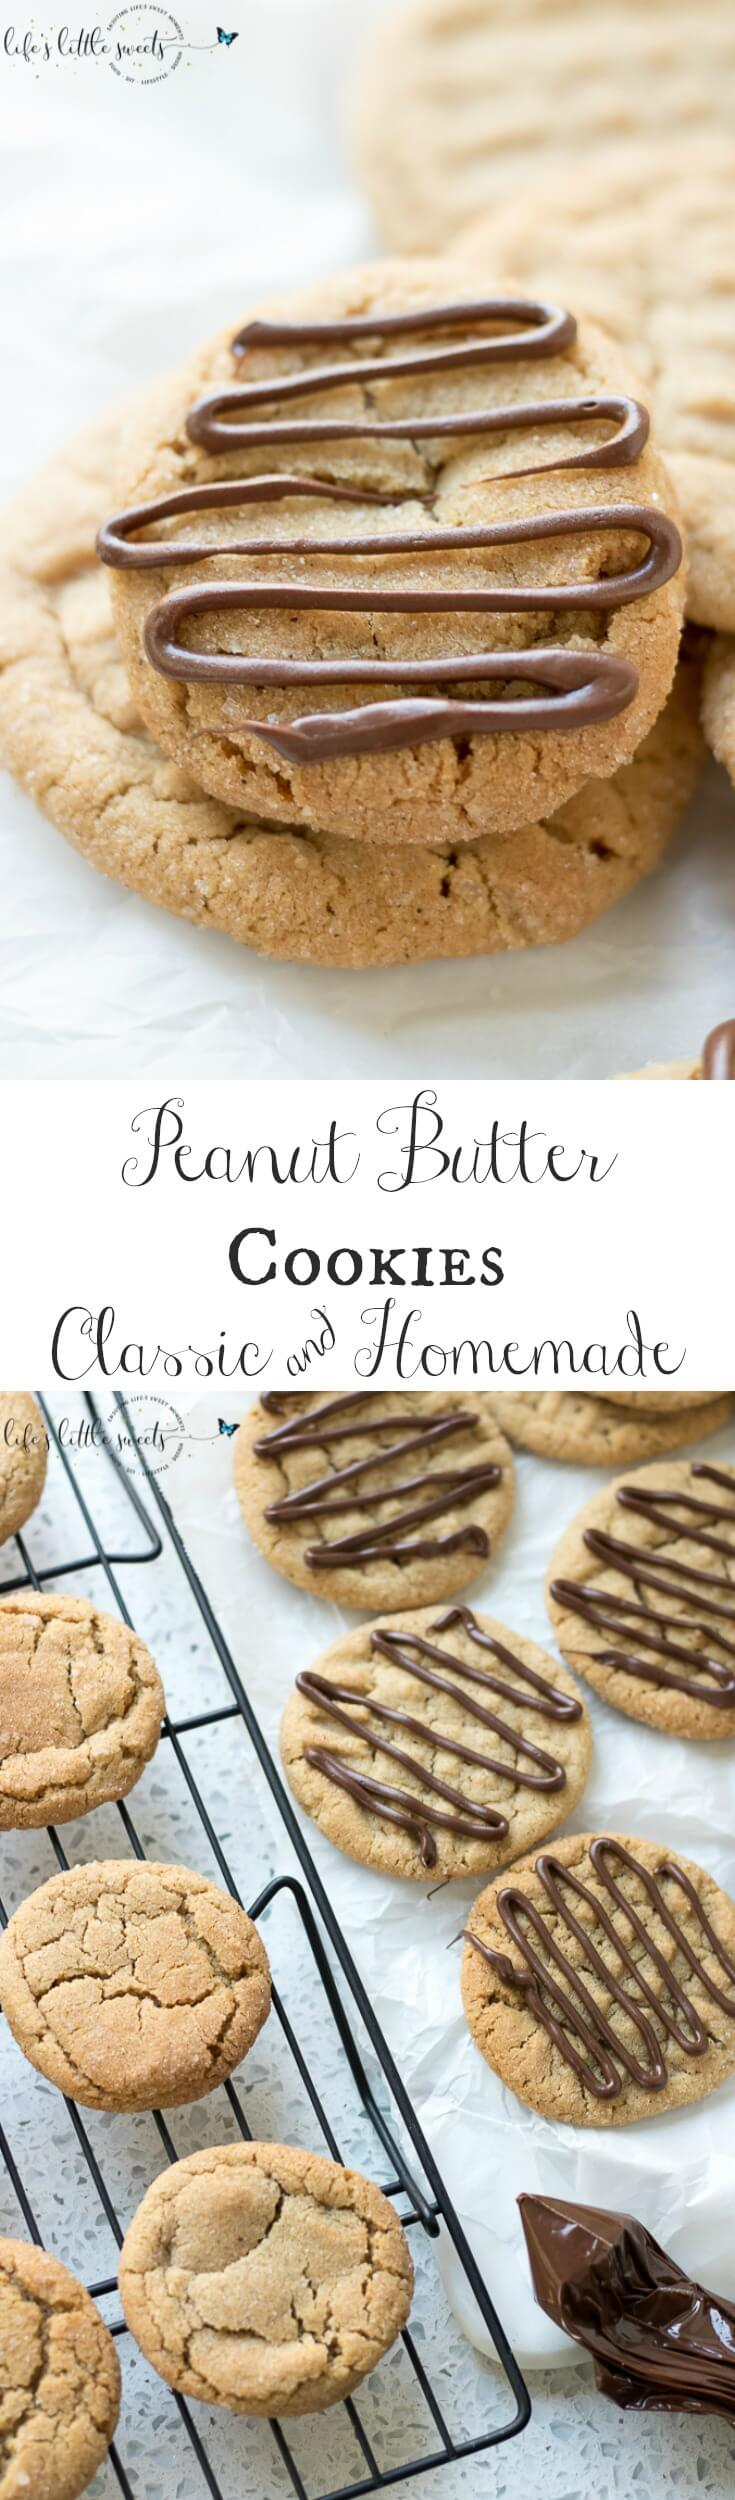 These Peanut Butter Cookies are a classic, homemade peanut butter cookie recipe. They are savory and sweet and can be made crispy or chewy. They taste delicious when drizzled or dipped in chocolate. #peanutbuttercookies #peanutbuter #chocolate #christmascookies #classic #recipe #homemade #easy